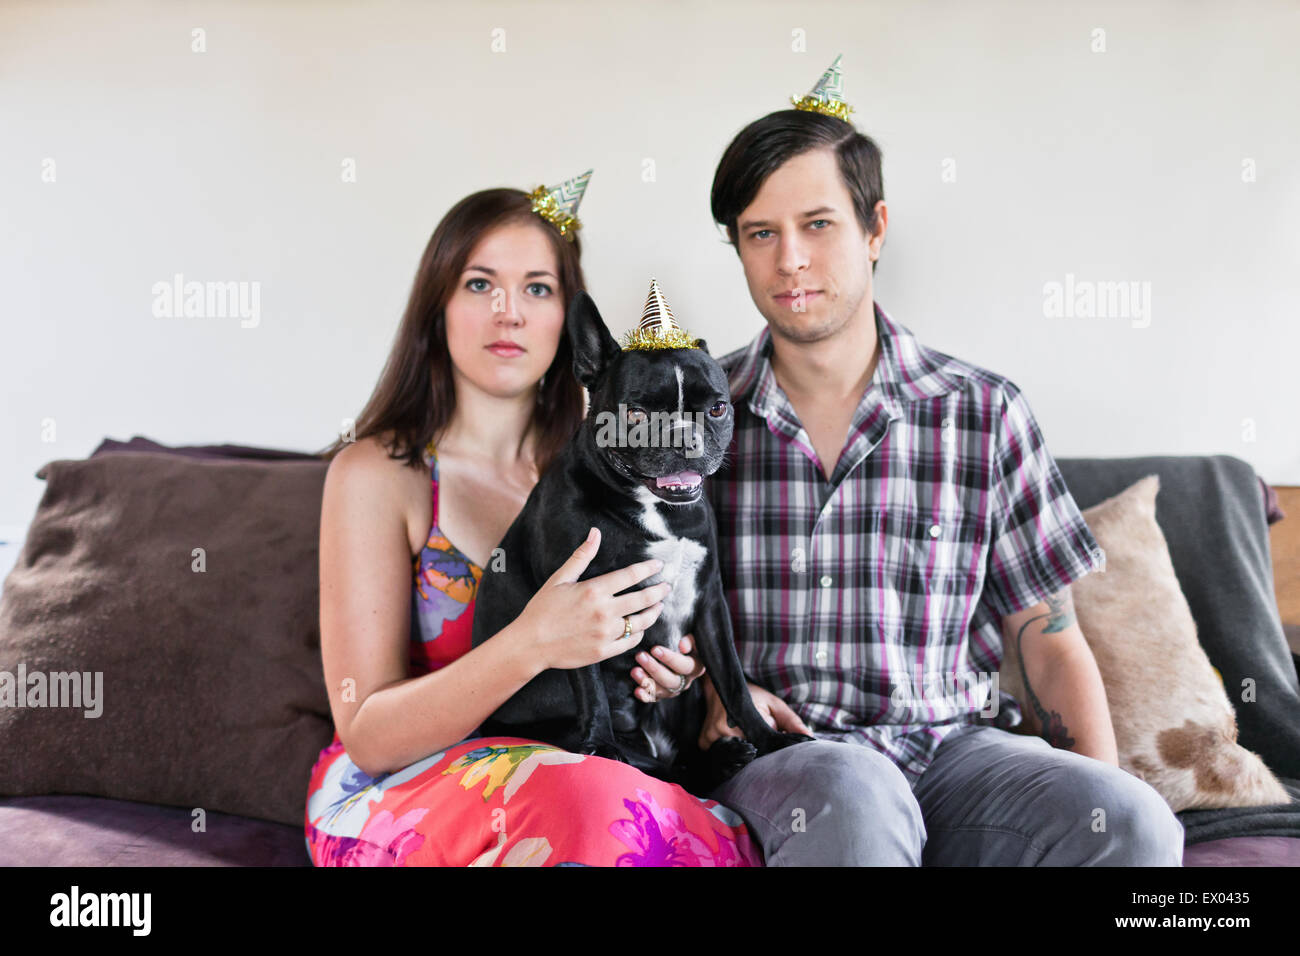 Portrait of couple sitting on sofa with dog and deadpan expressions - Stock Image